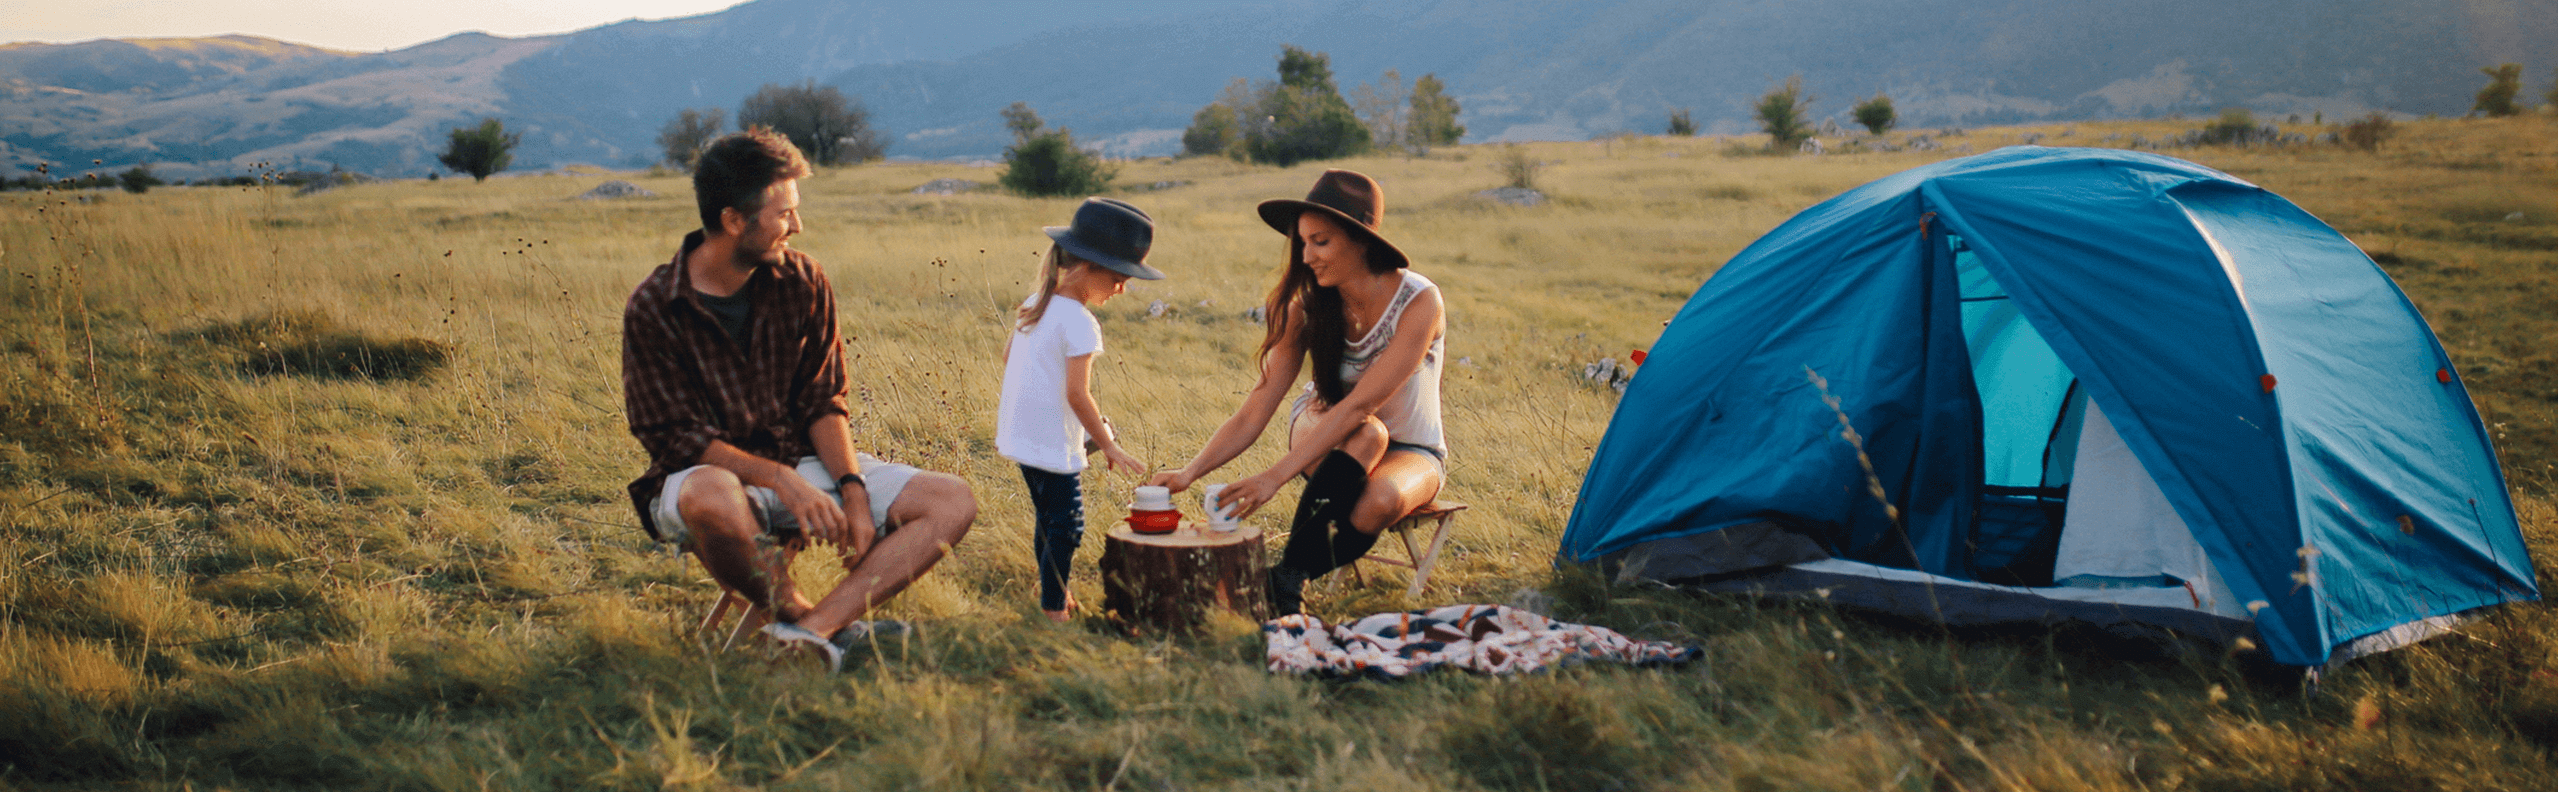 A man, woman and child camping in a field